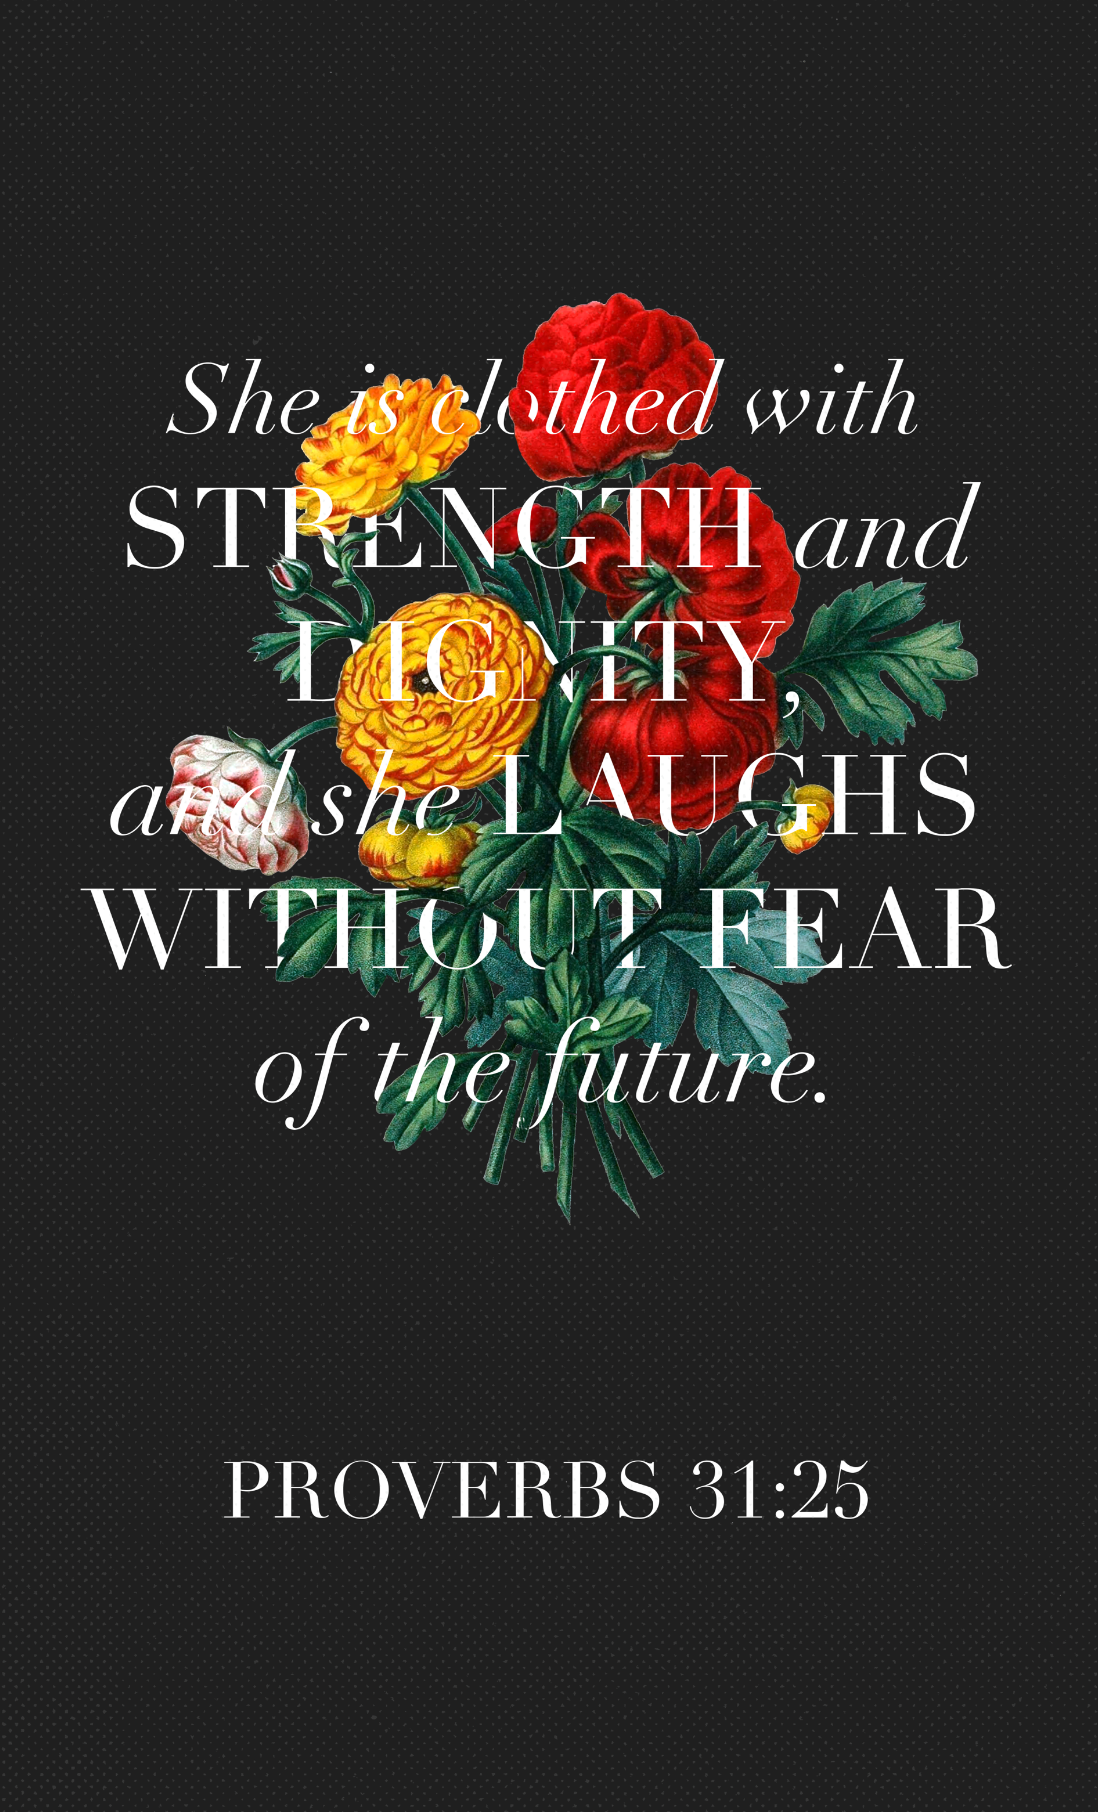 Proverbs 31:25 | Skillshare Projects